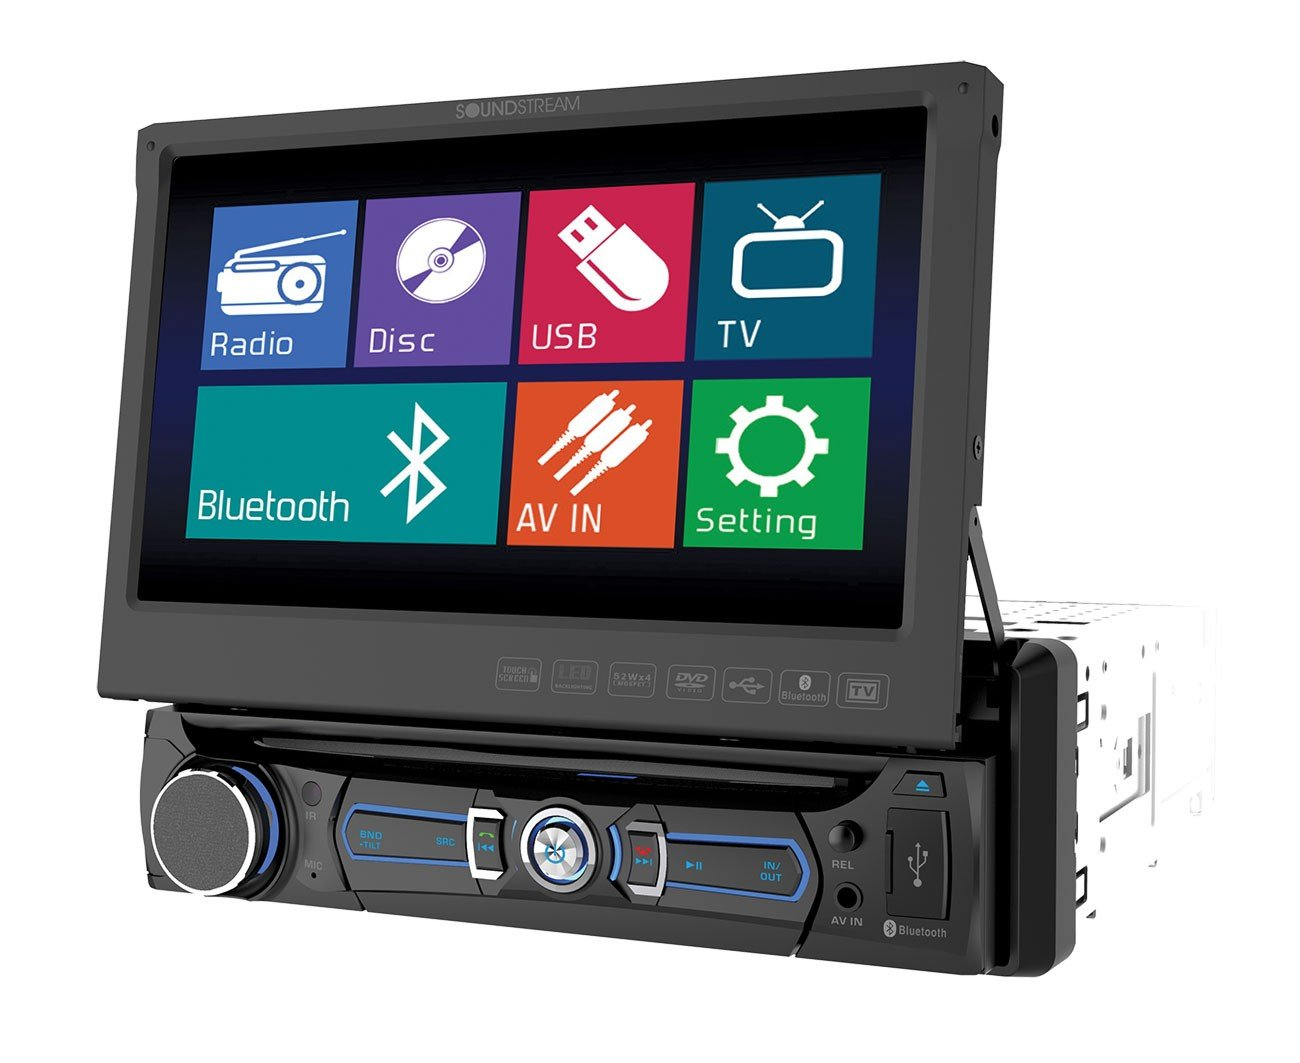 Amazon.com: Soundstream VR-701 In-Dash Single-Din Car Stereo DVD Player  with 7-Inch LCD Display: Car Electronics